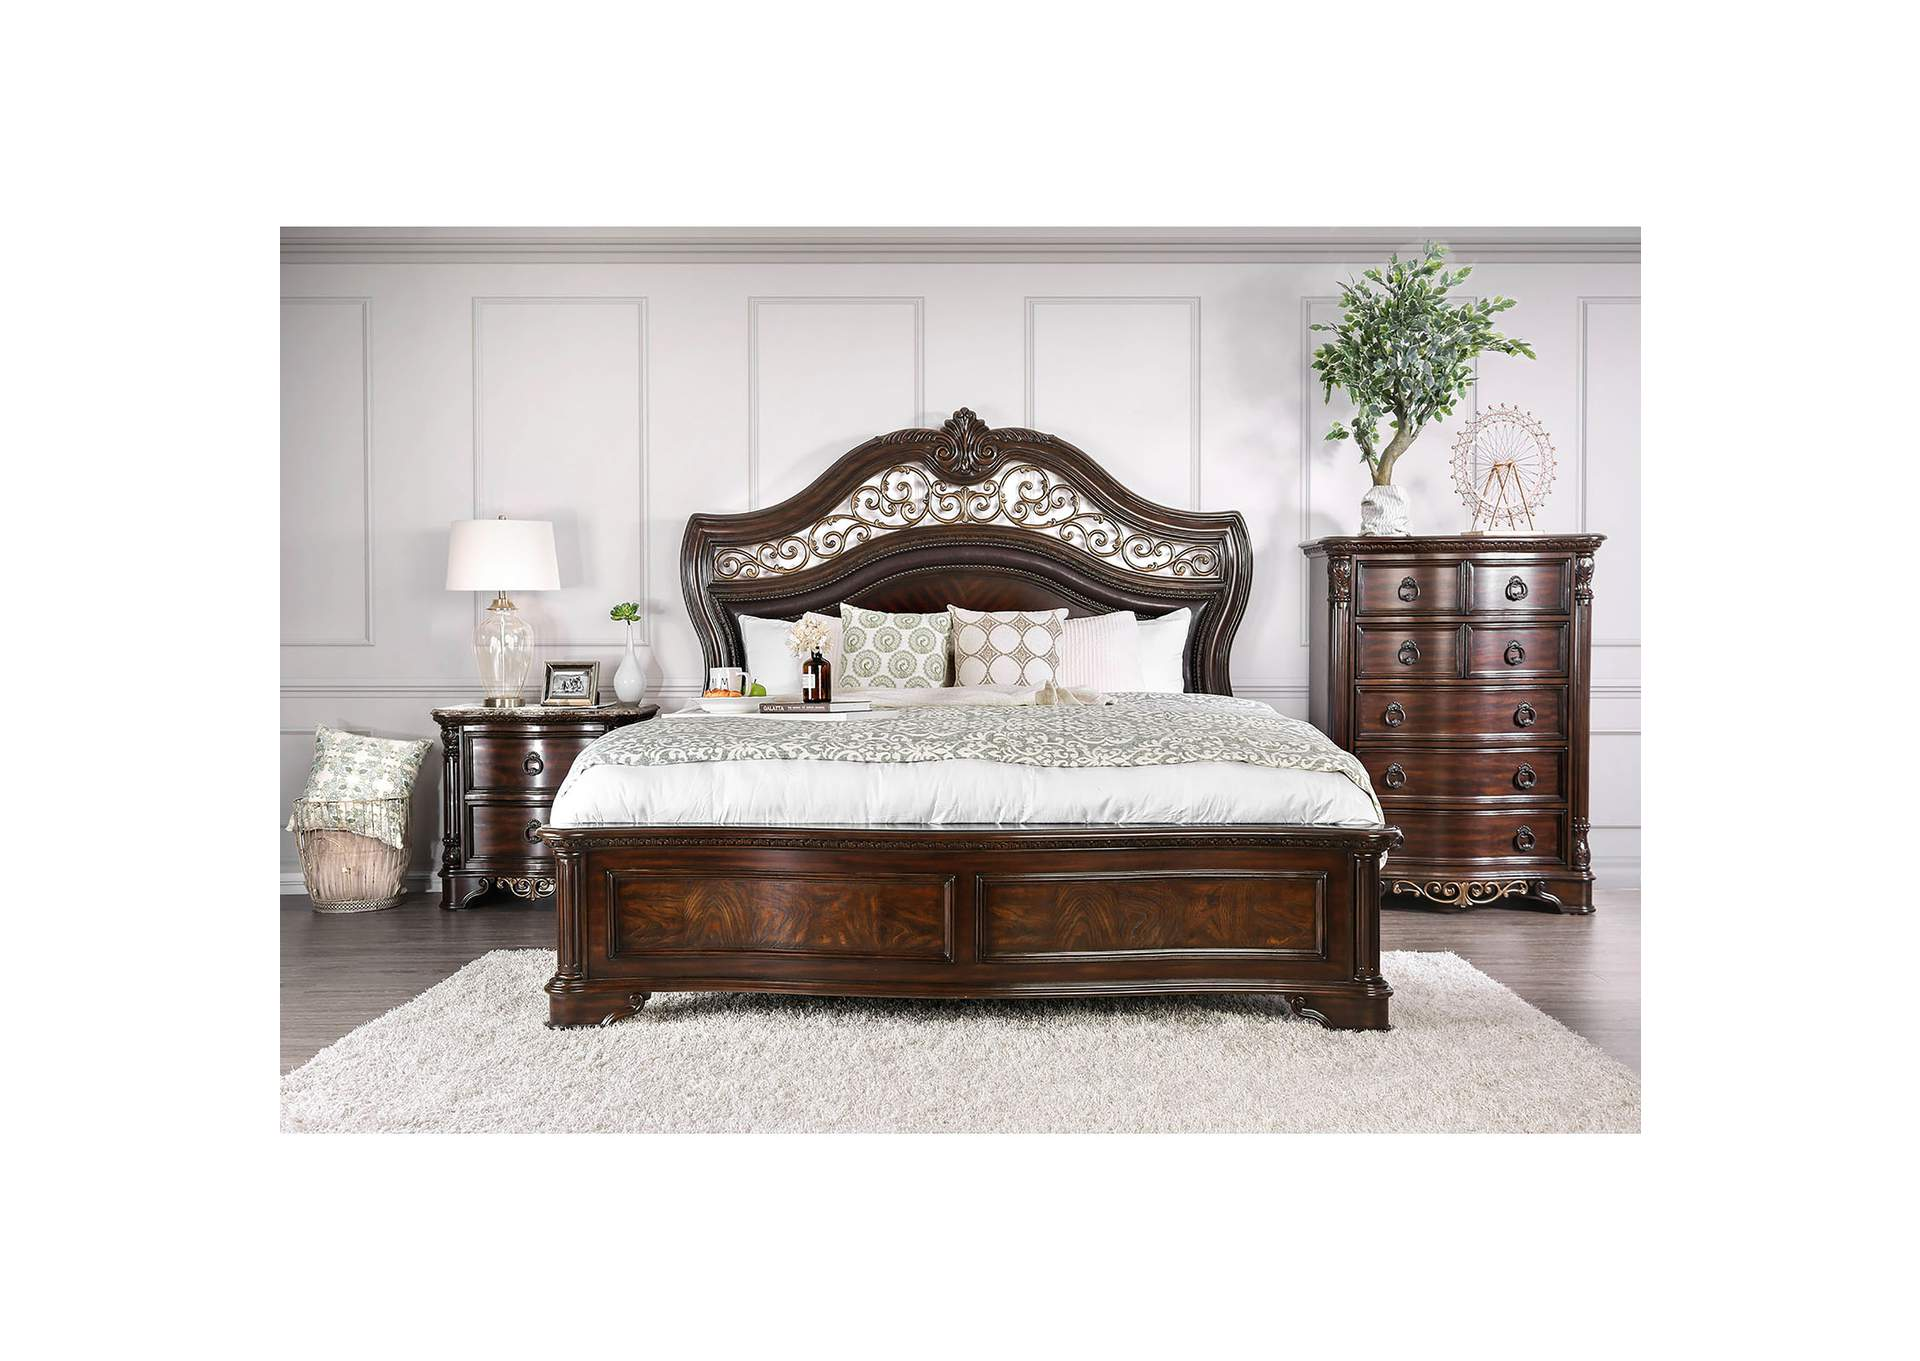 Menodora Brown Cherry Queen Platform Bed w/Dresser and Mirror,Furniture of America